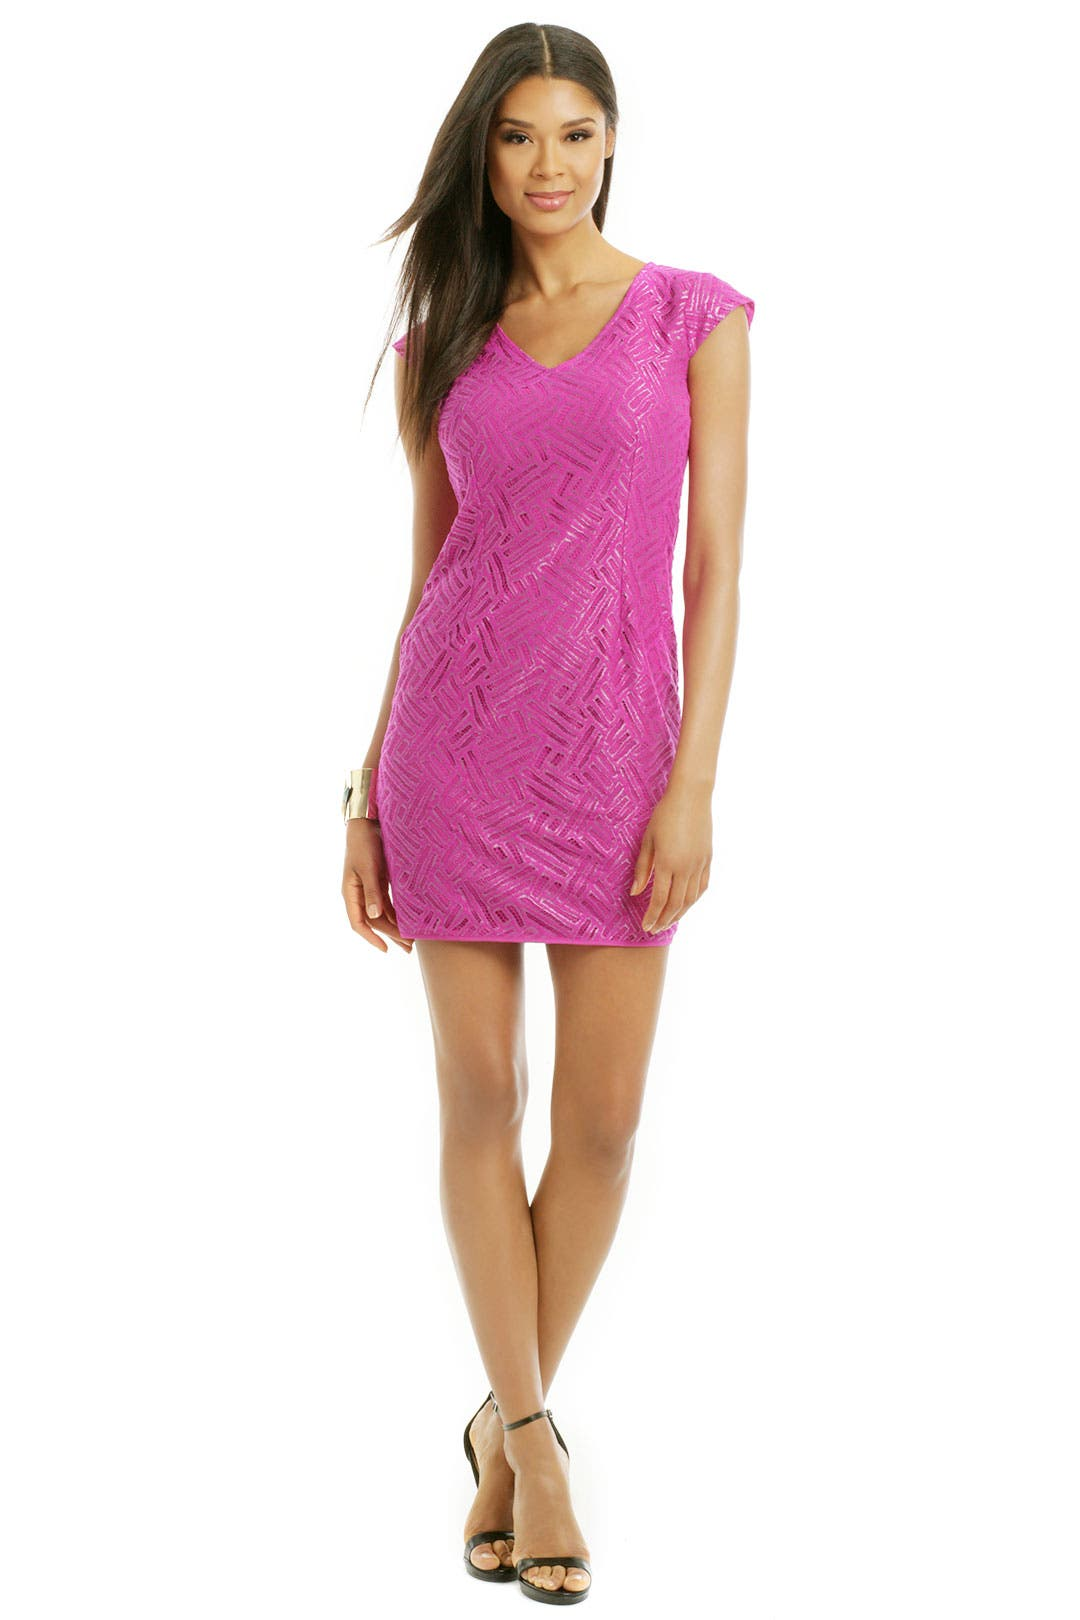 Selassie Dress by Lilly Pulitzer